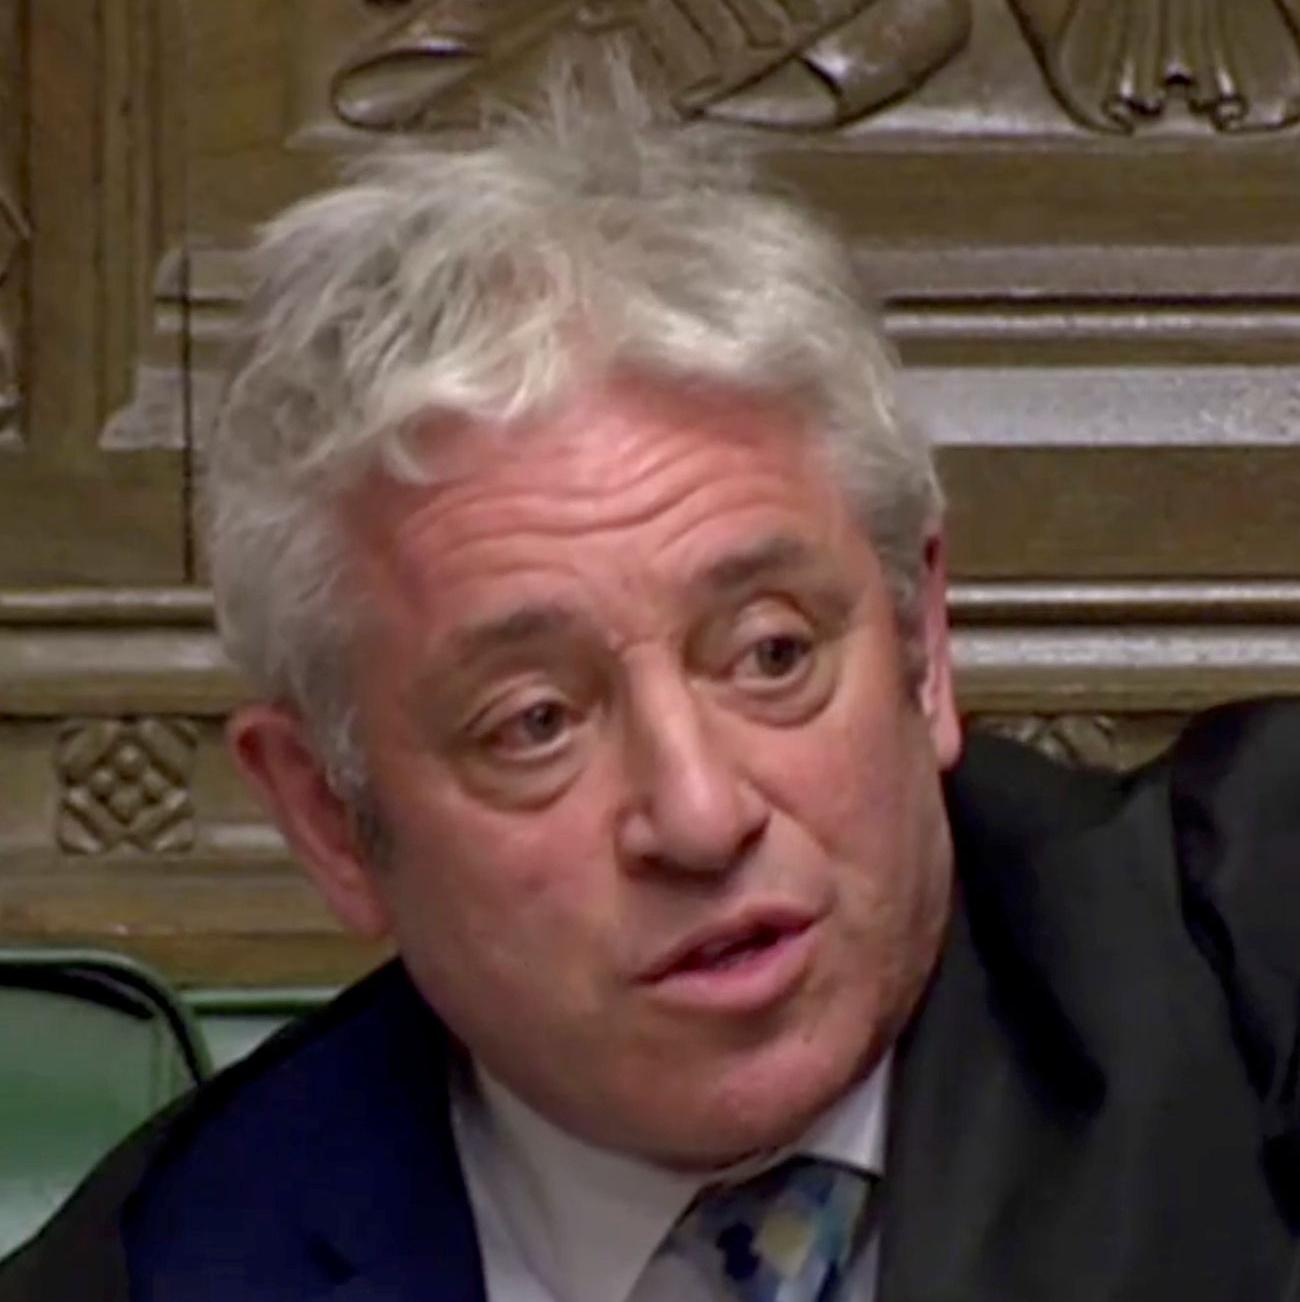 Brexit: John Bercow rules out third meaningful vote on same deal